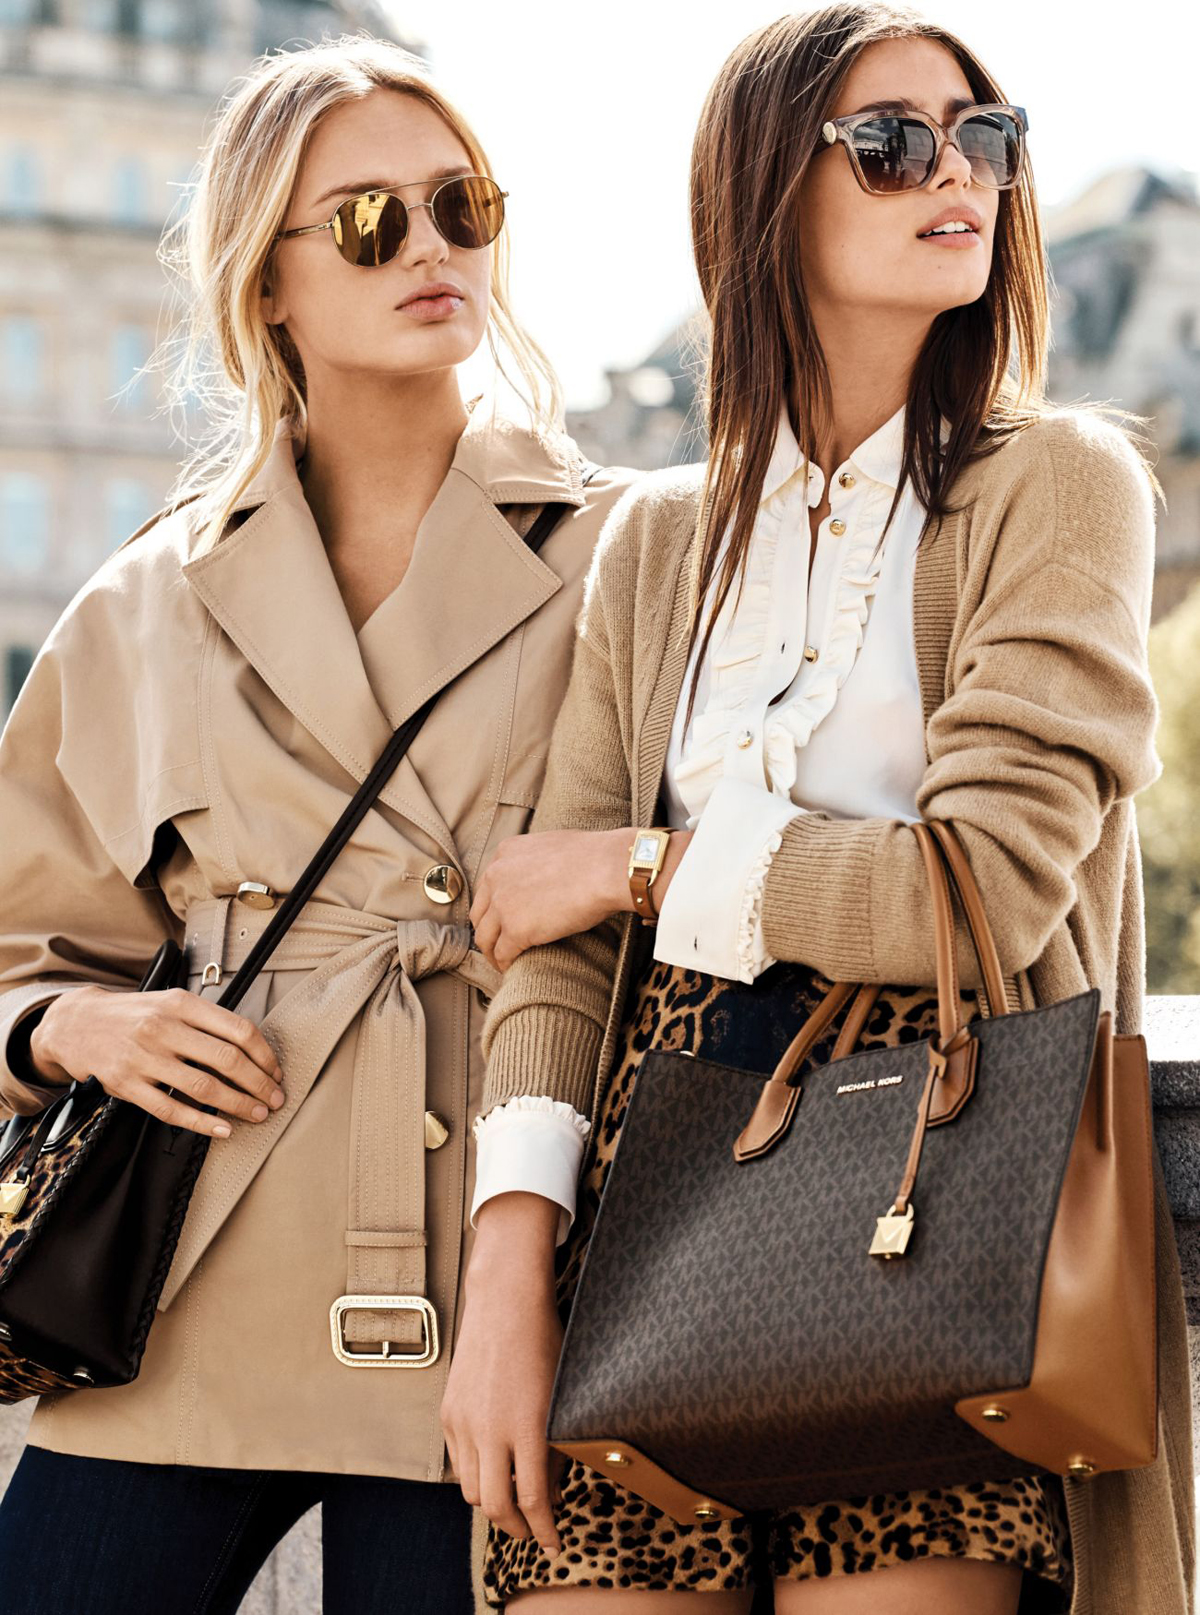 Michael Kors Fall Fashion